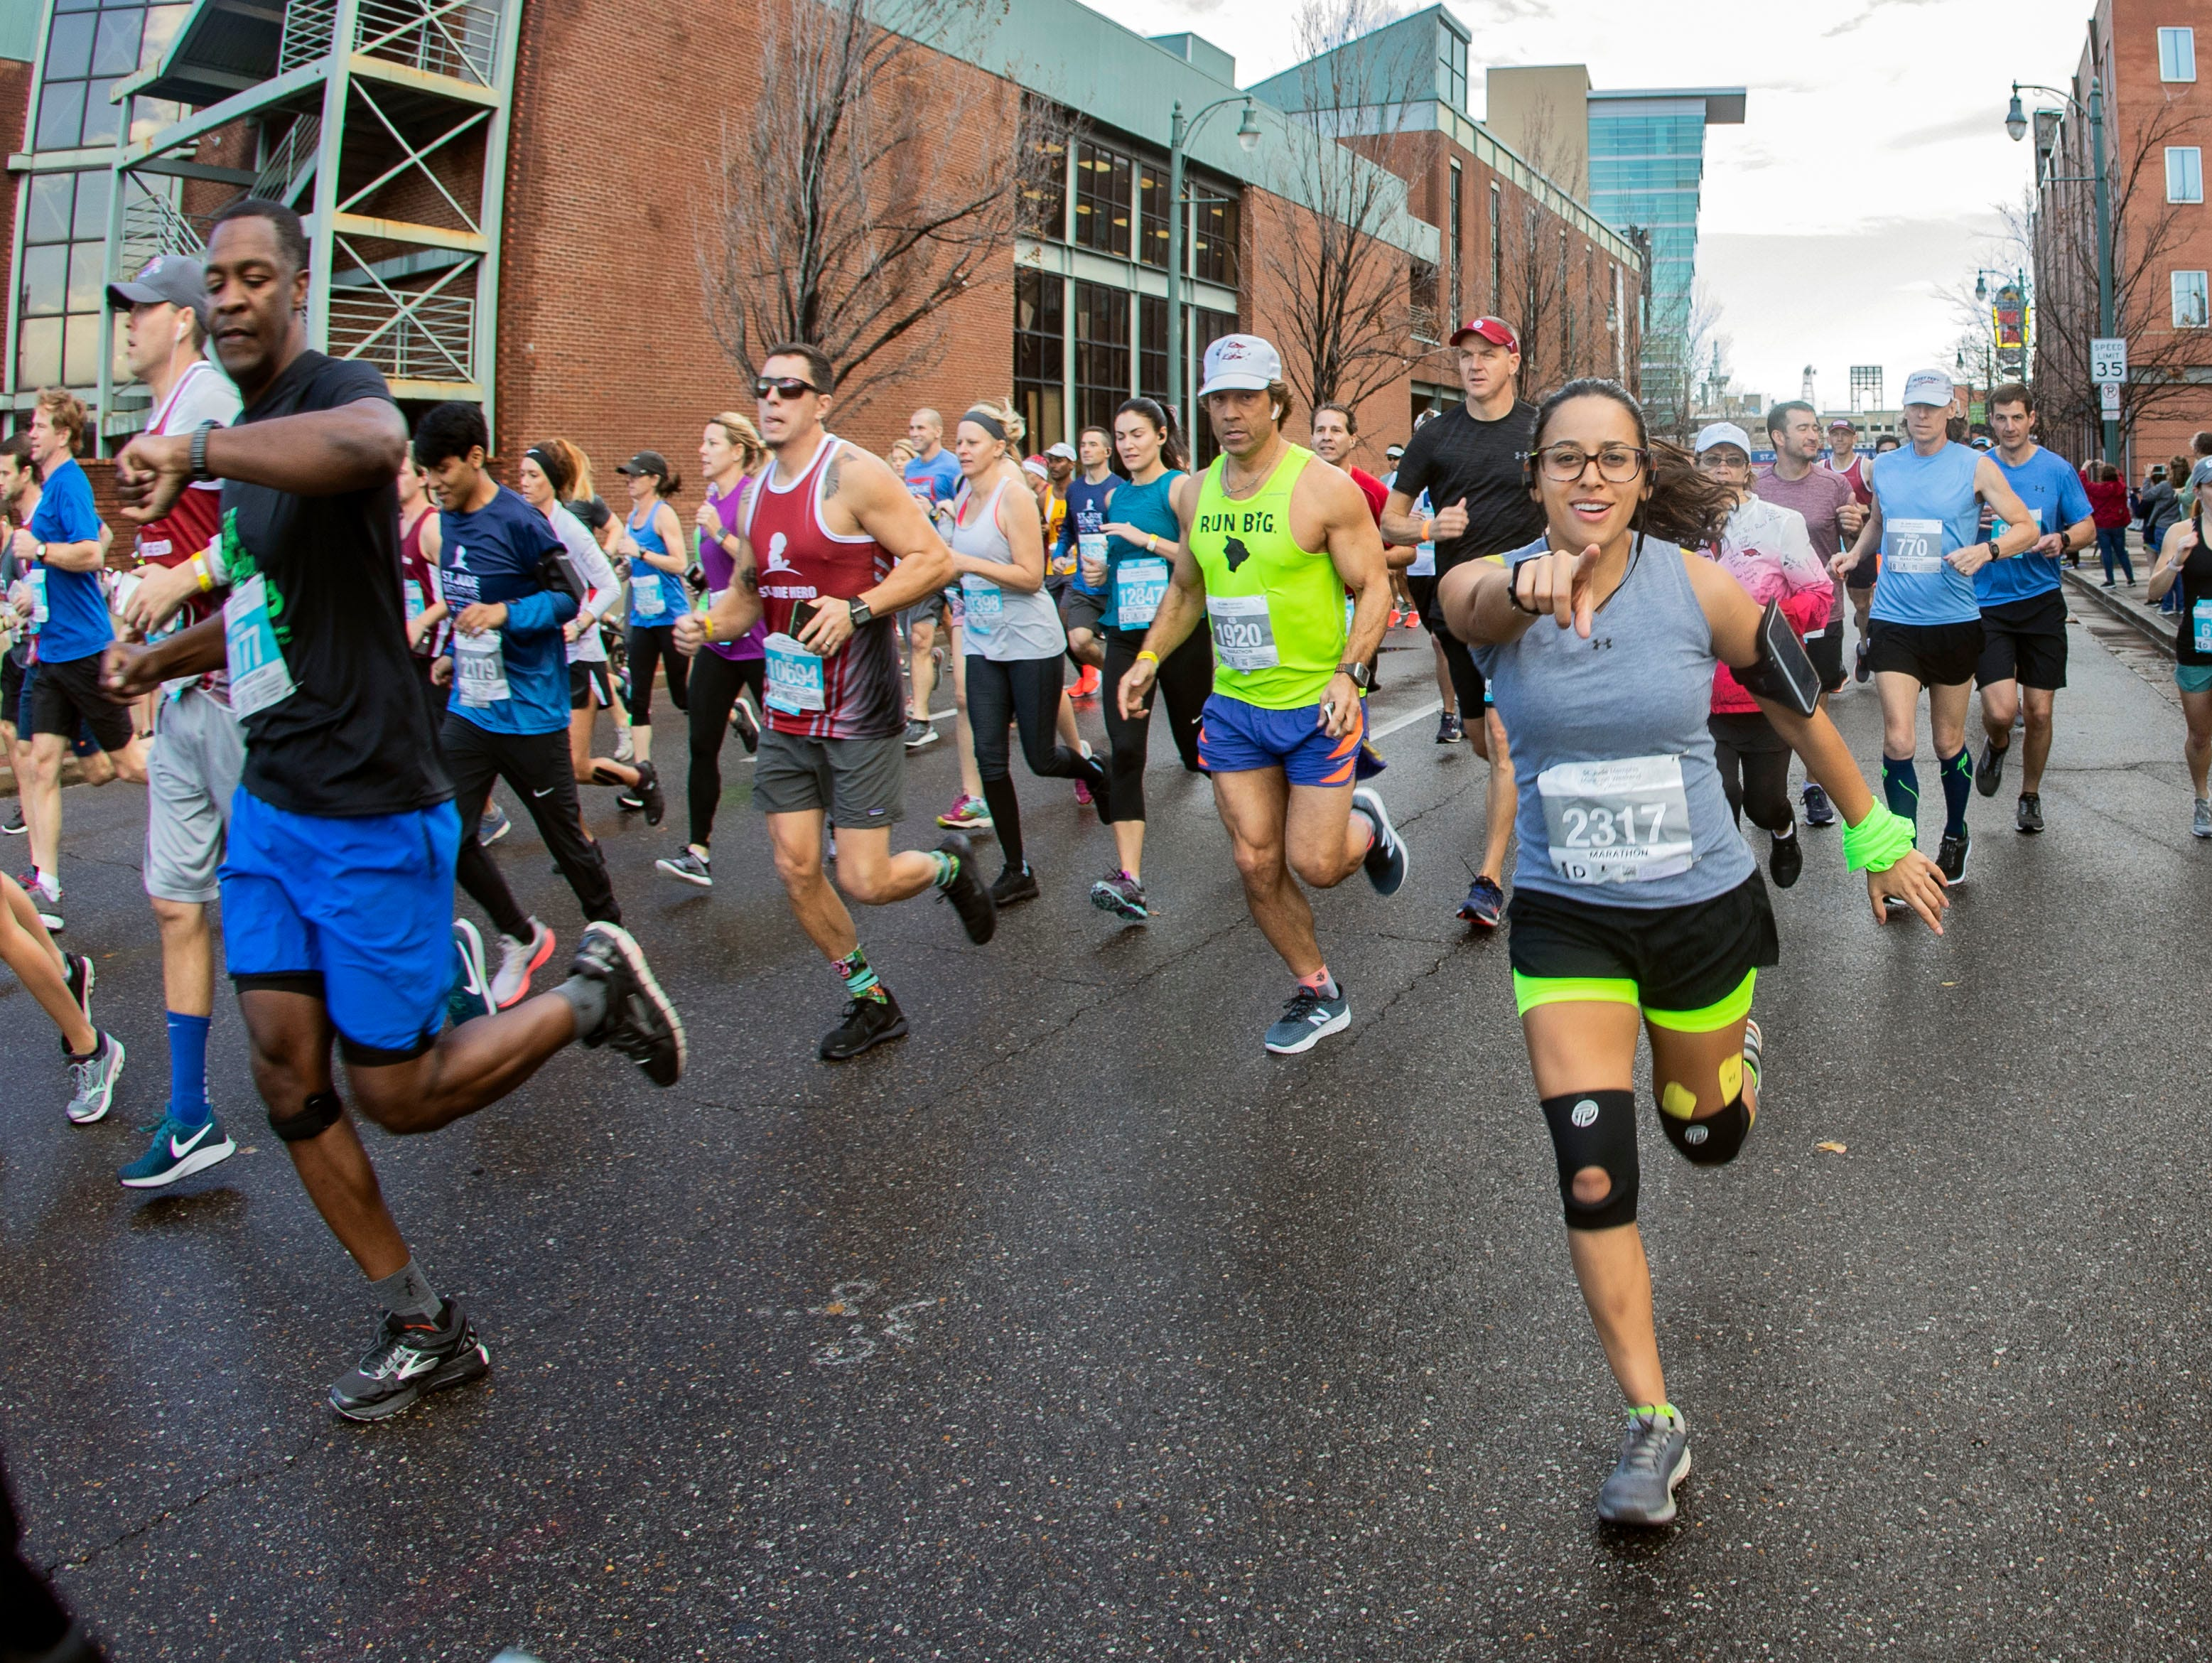 Scenes from the start of the 2018 St. Jude Memphis Marathon on Saturday, Dec. 1, 2018.